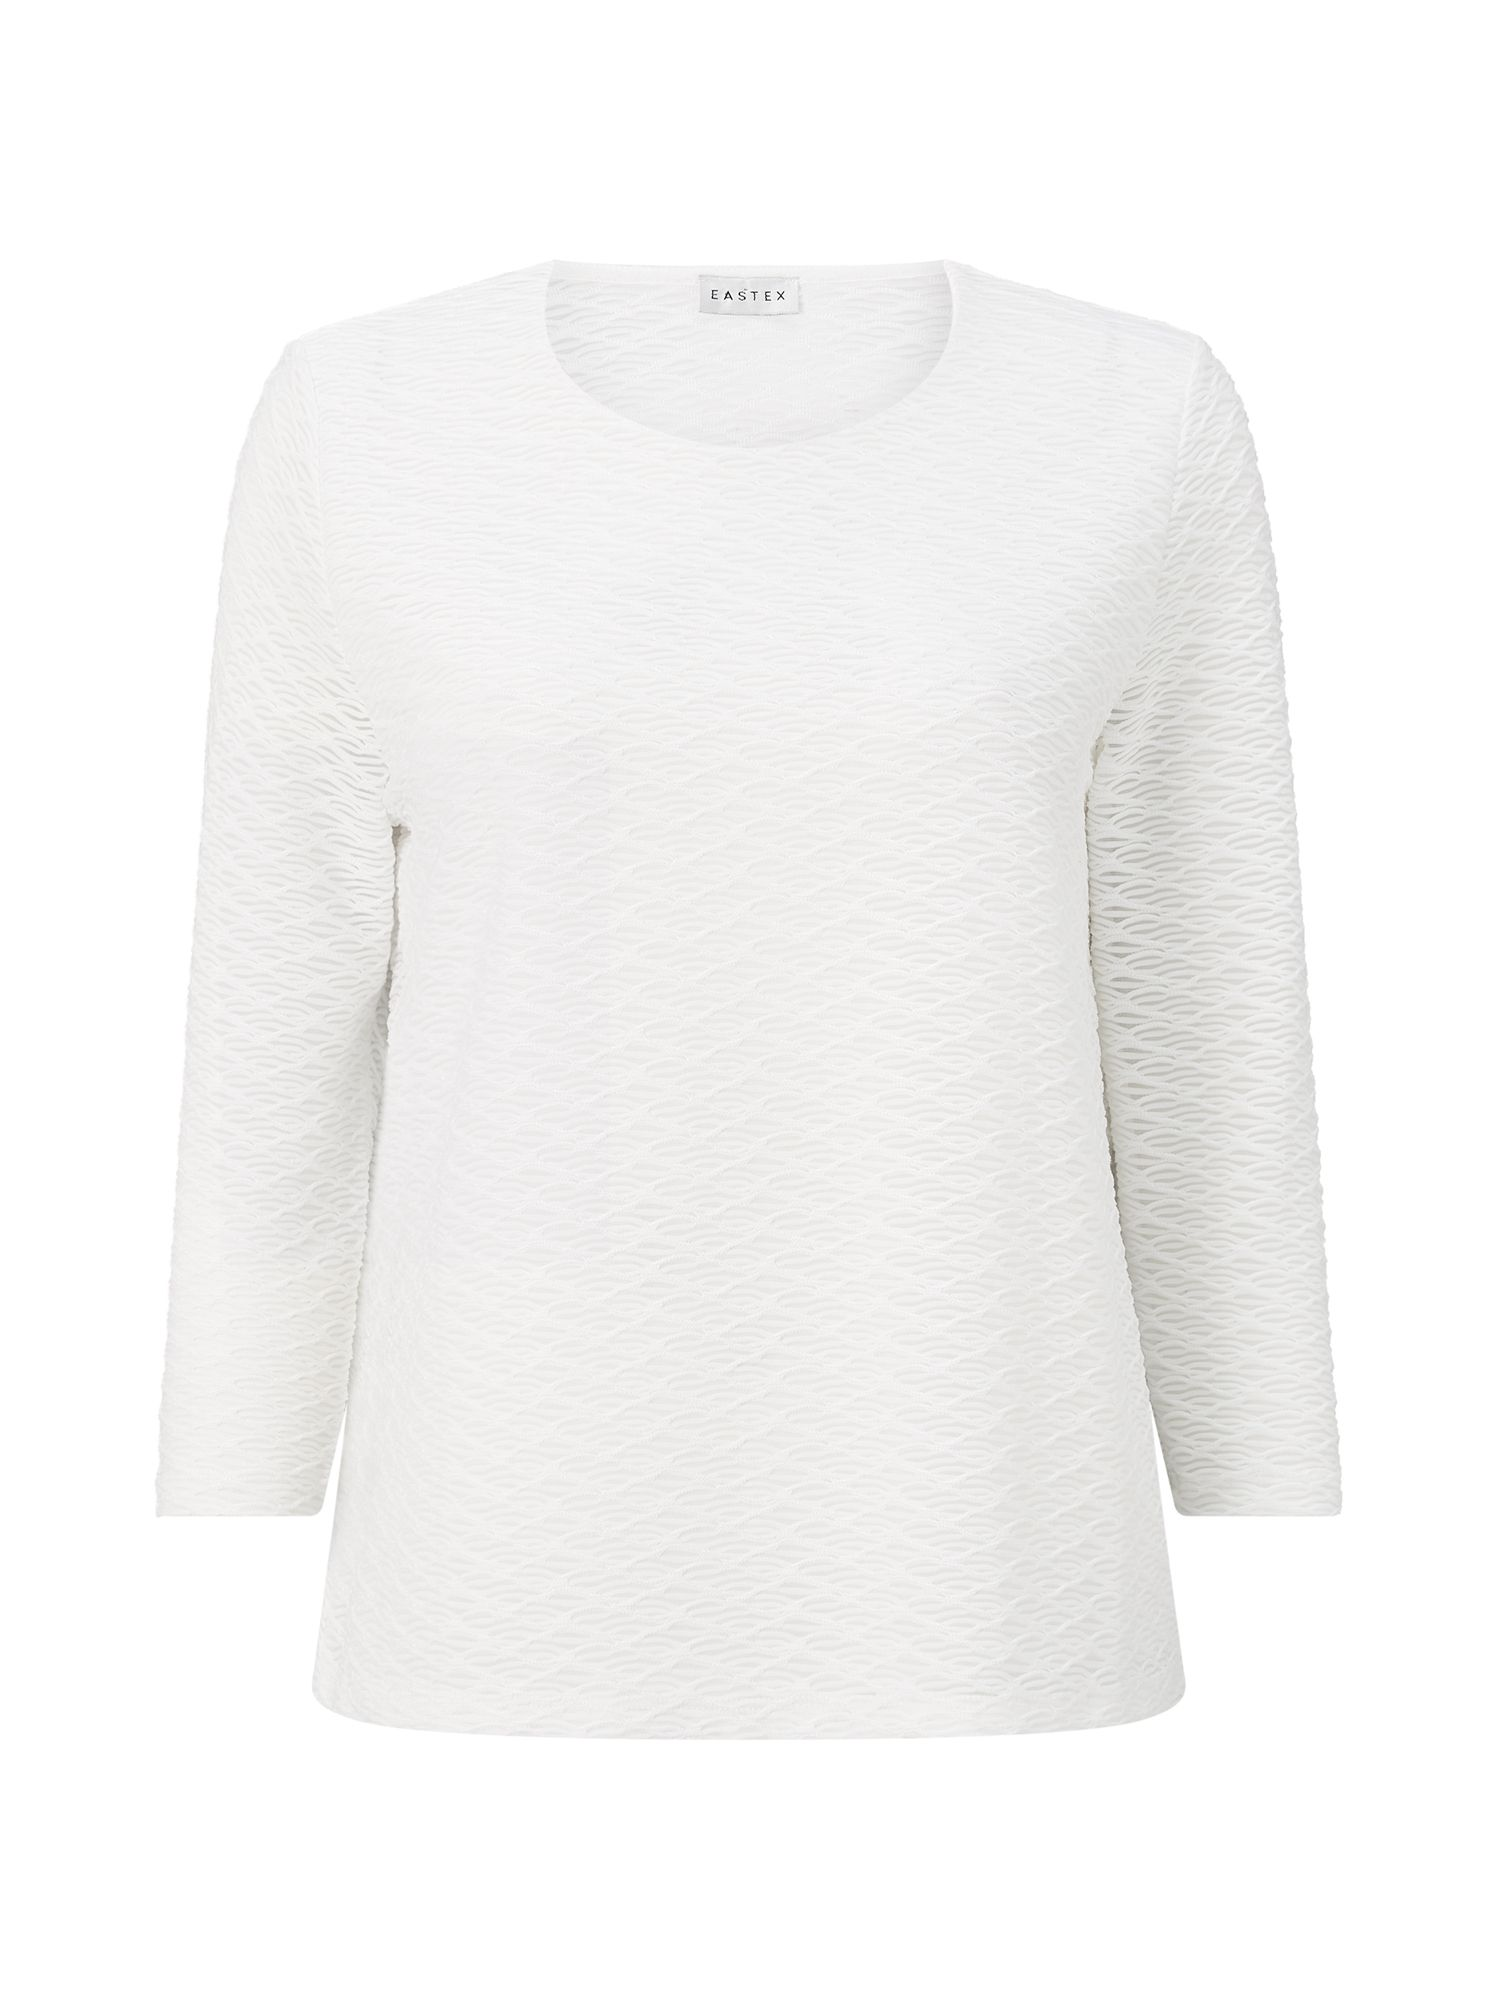 Eastex Textured Jersey Top, White